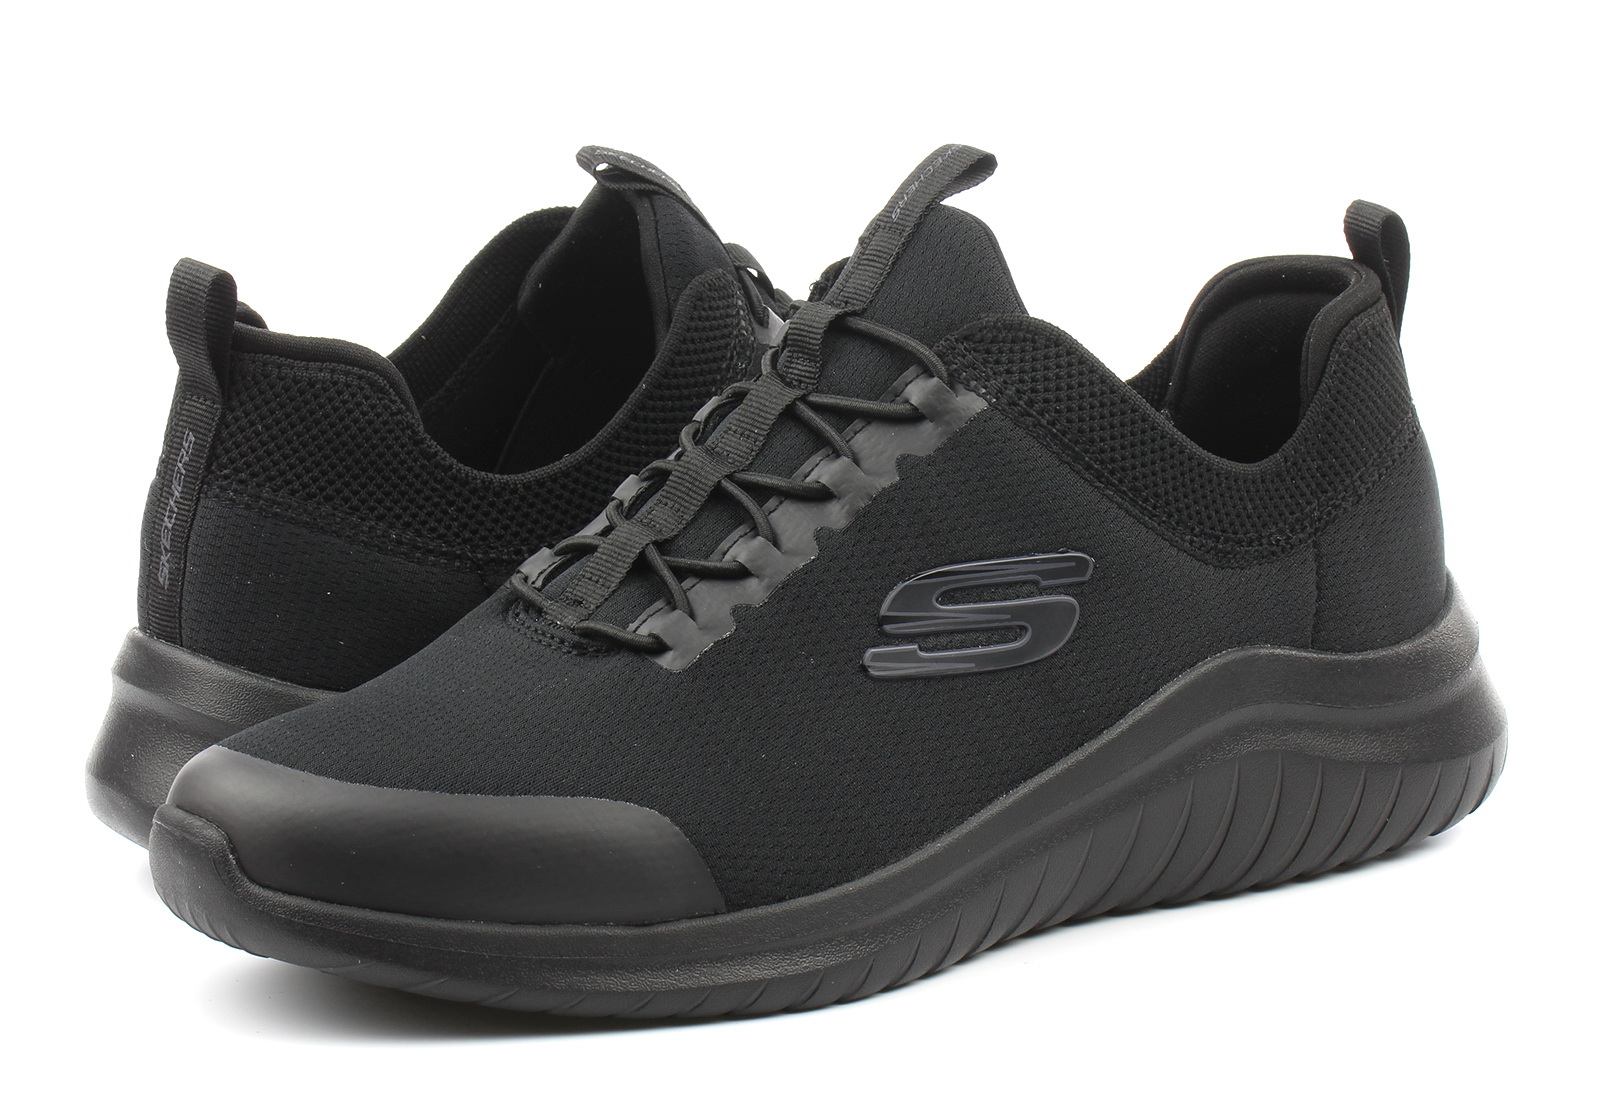 Skechers Patike Ultra Flex 2.0 - Fedik